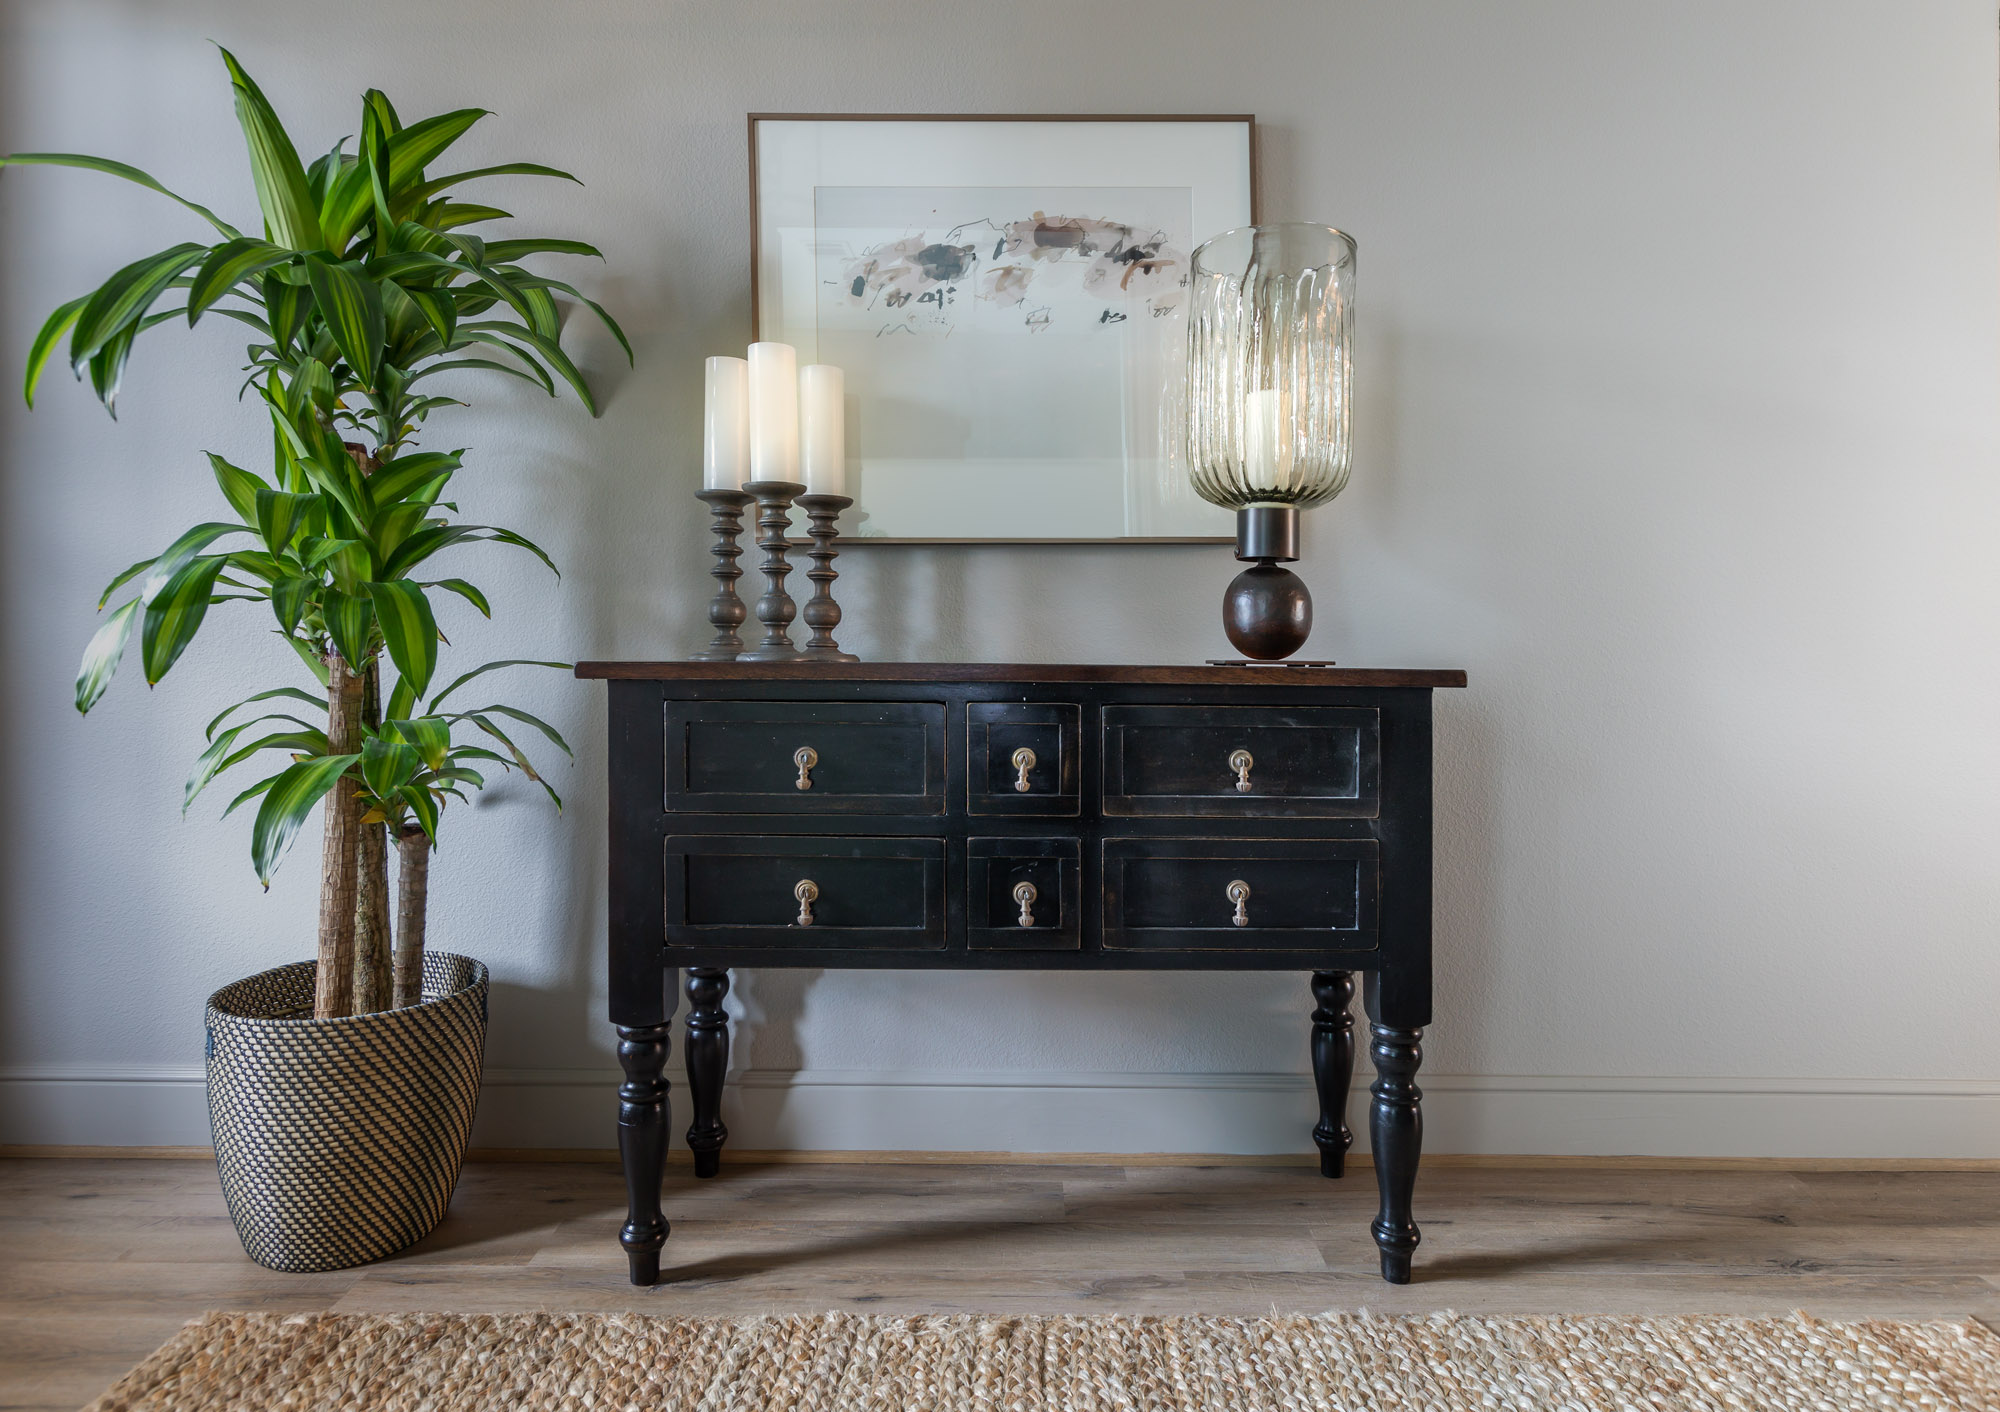 Harper's Preserve entry with traditional dark wood console table and large plant